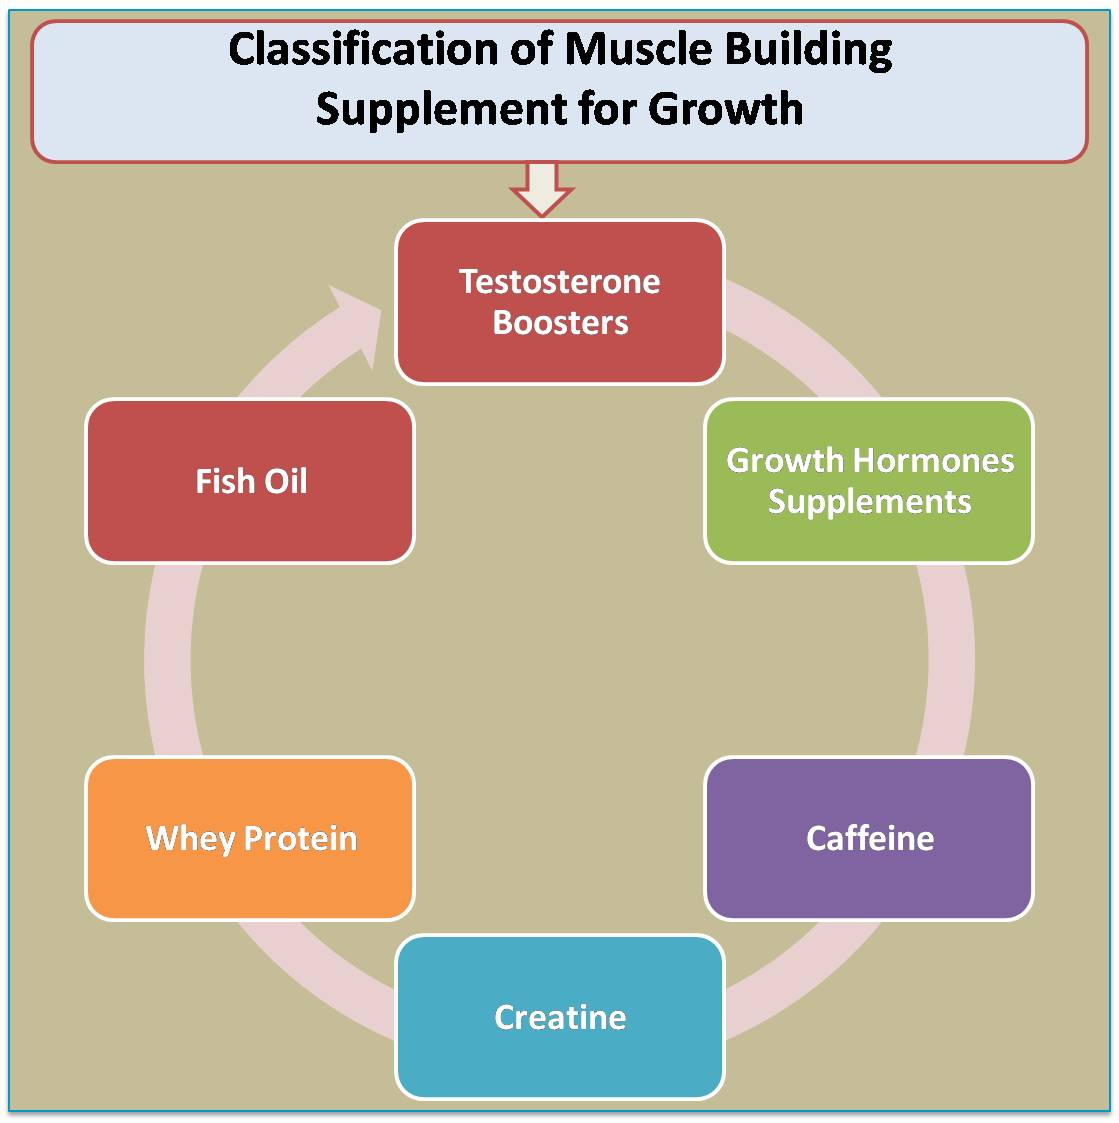 Classification of Muscle Building